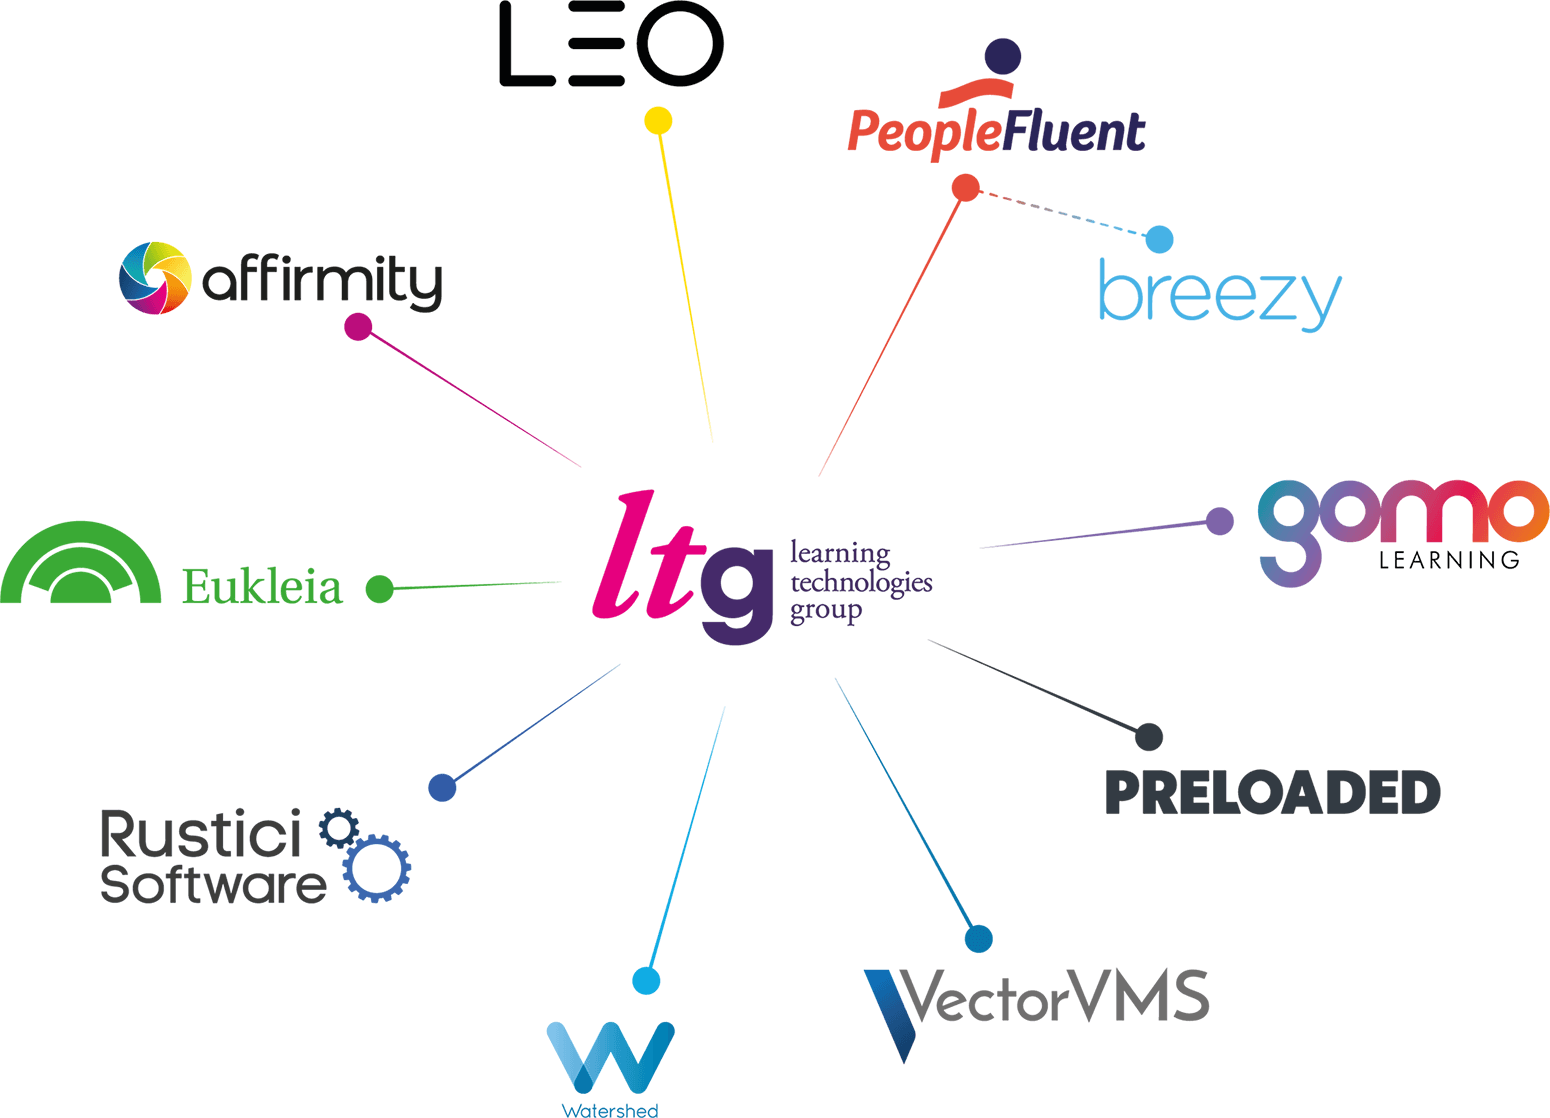 The LTG constellation of companies, including Breezy HR